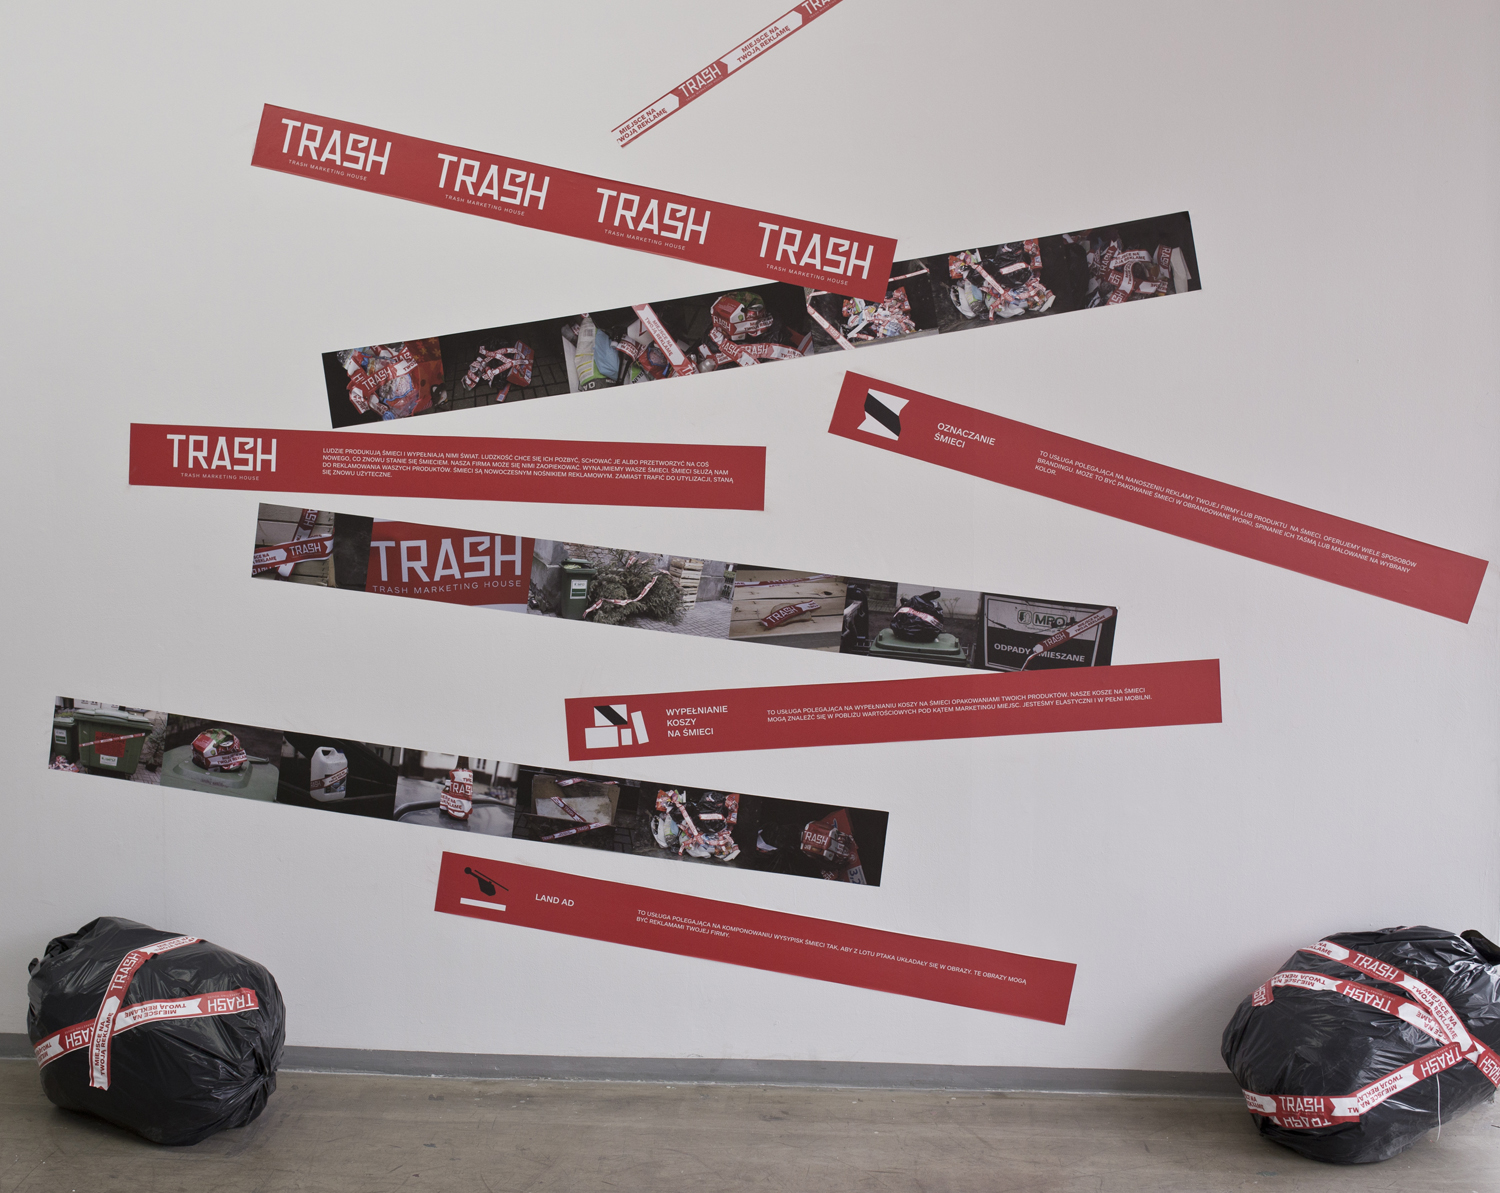 Dominik Cymer, Trash